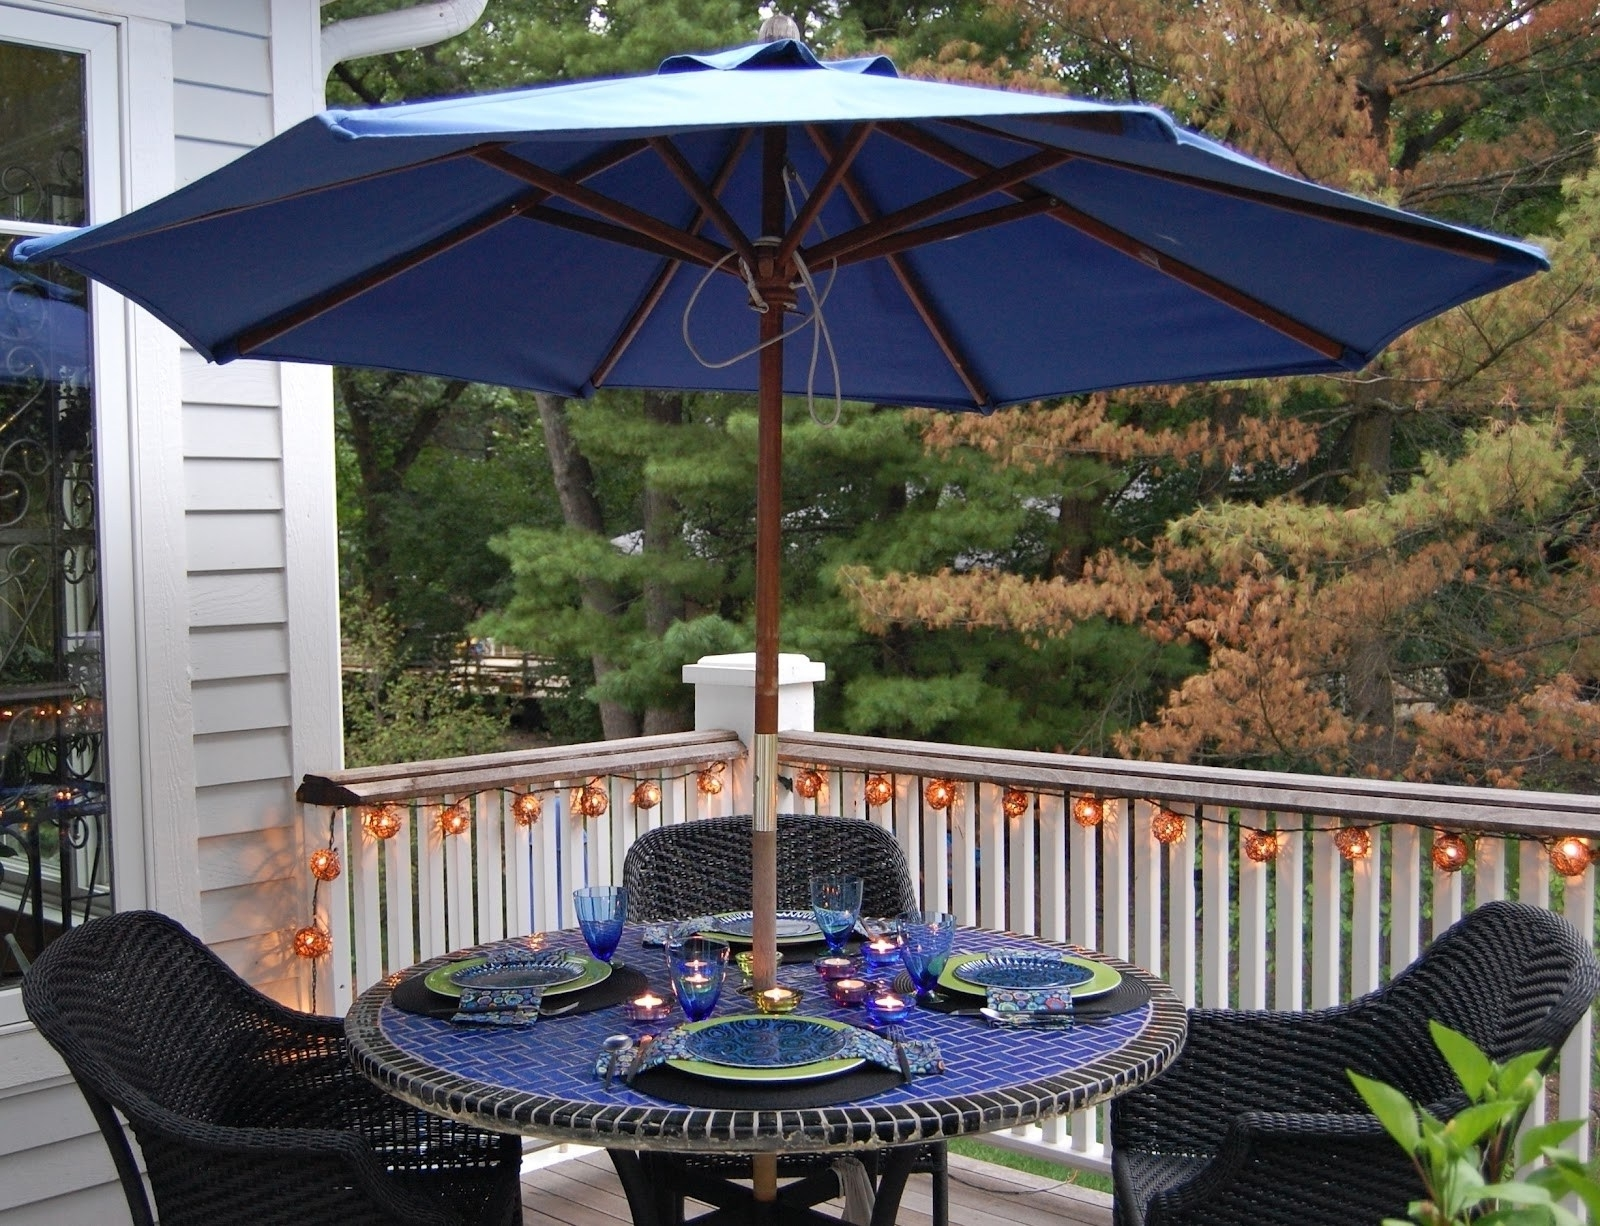 Patio: Amazing Small Patio Table With Umbrella Outdoor Furniture Throughout Favorite Patio Tables With Umbrellas (View 17 of 20)